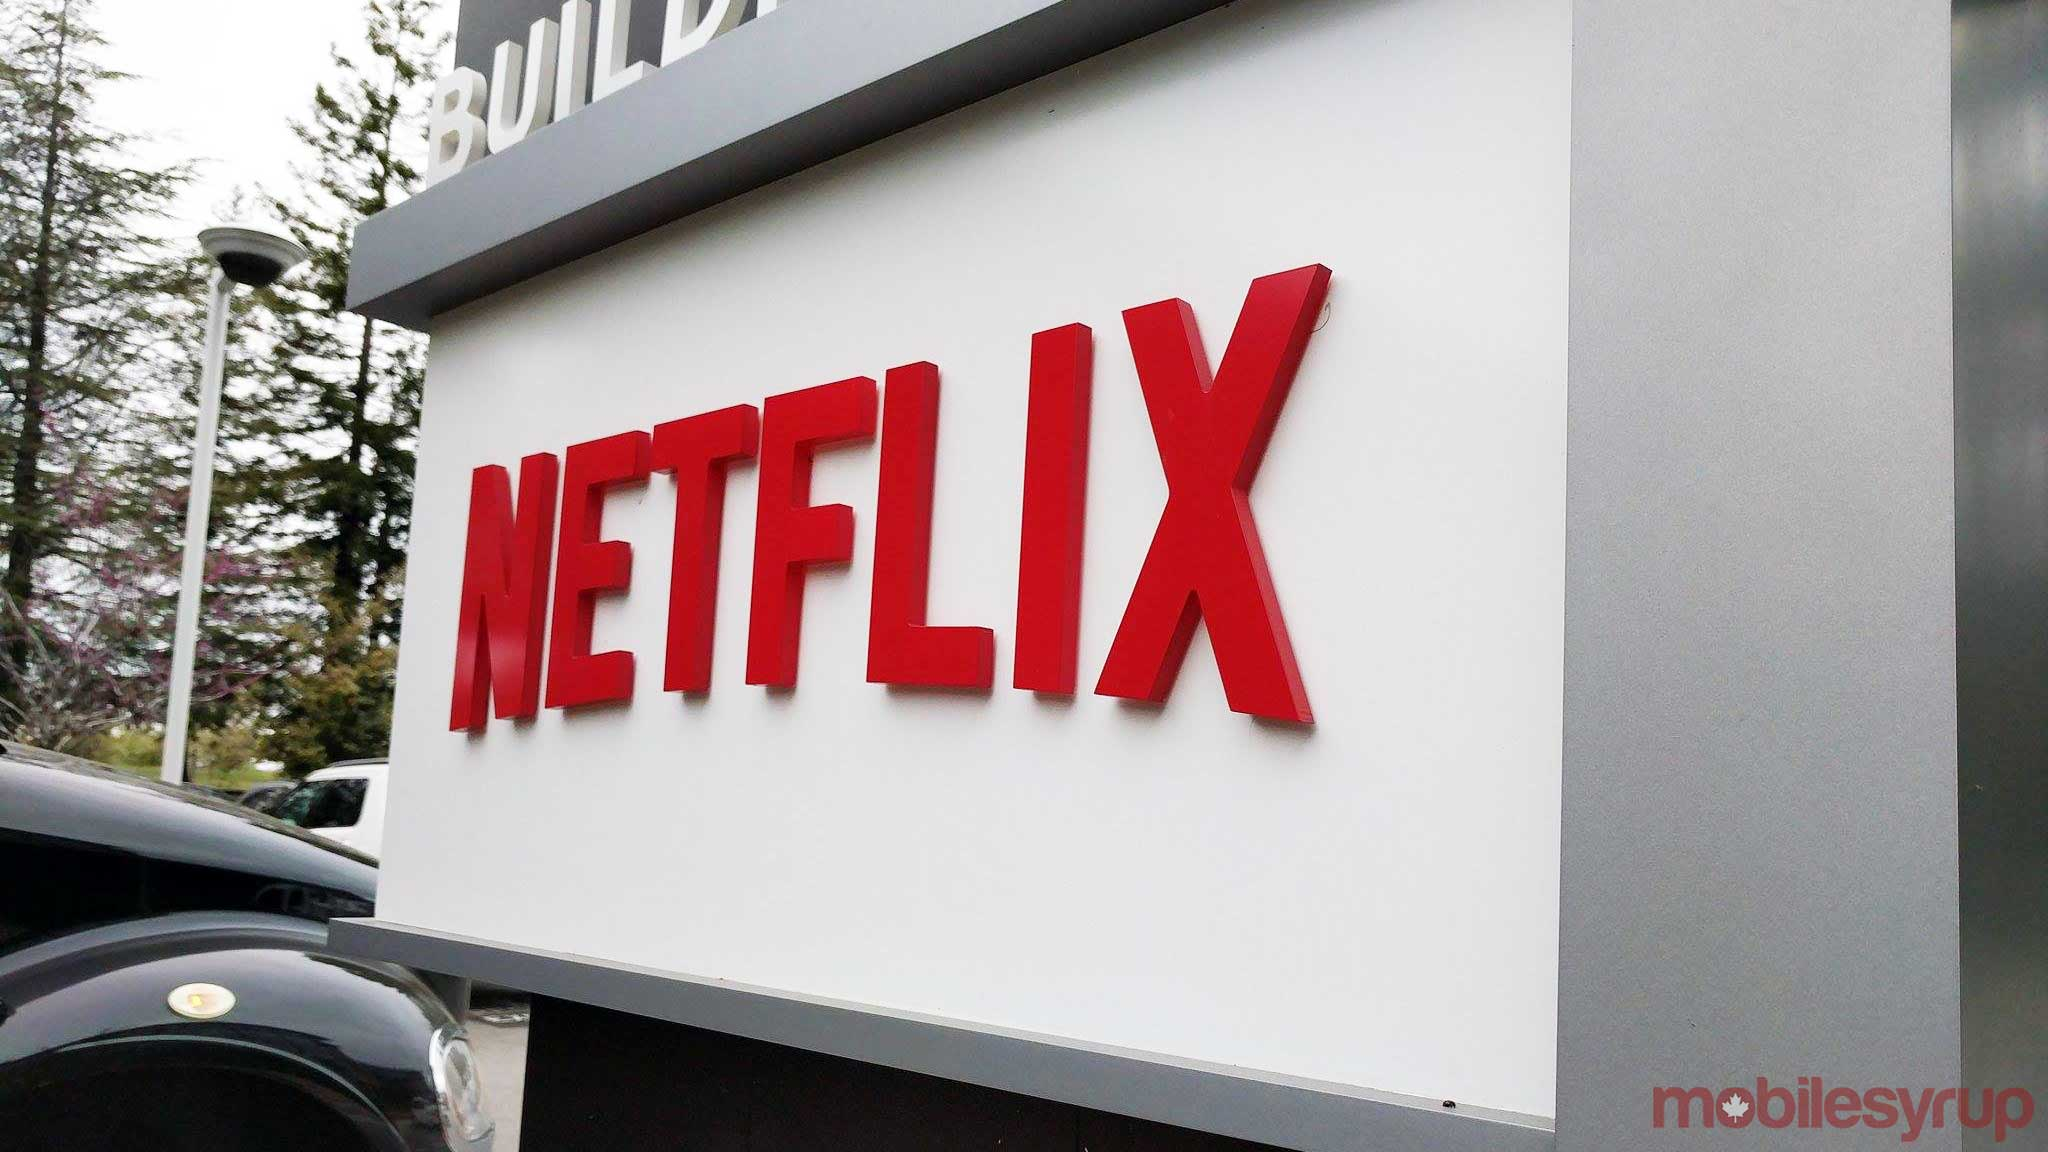 netflix sign at hq - netflix thumbs up rating